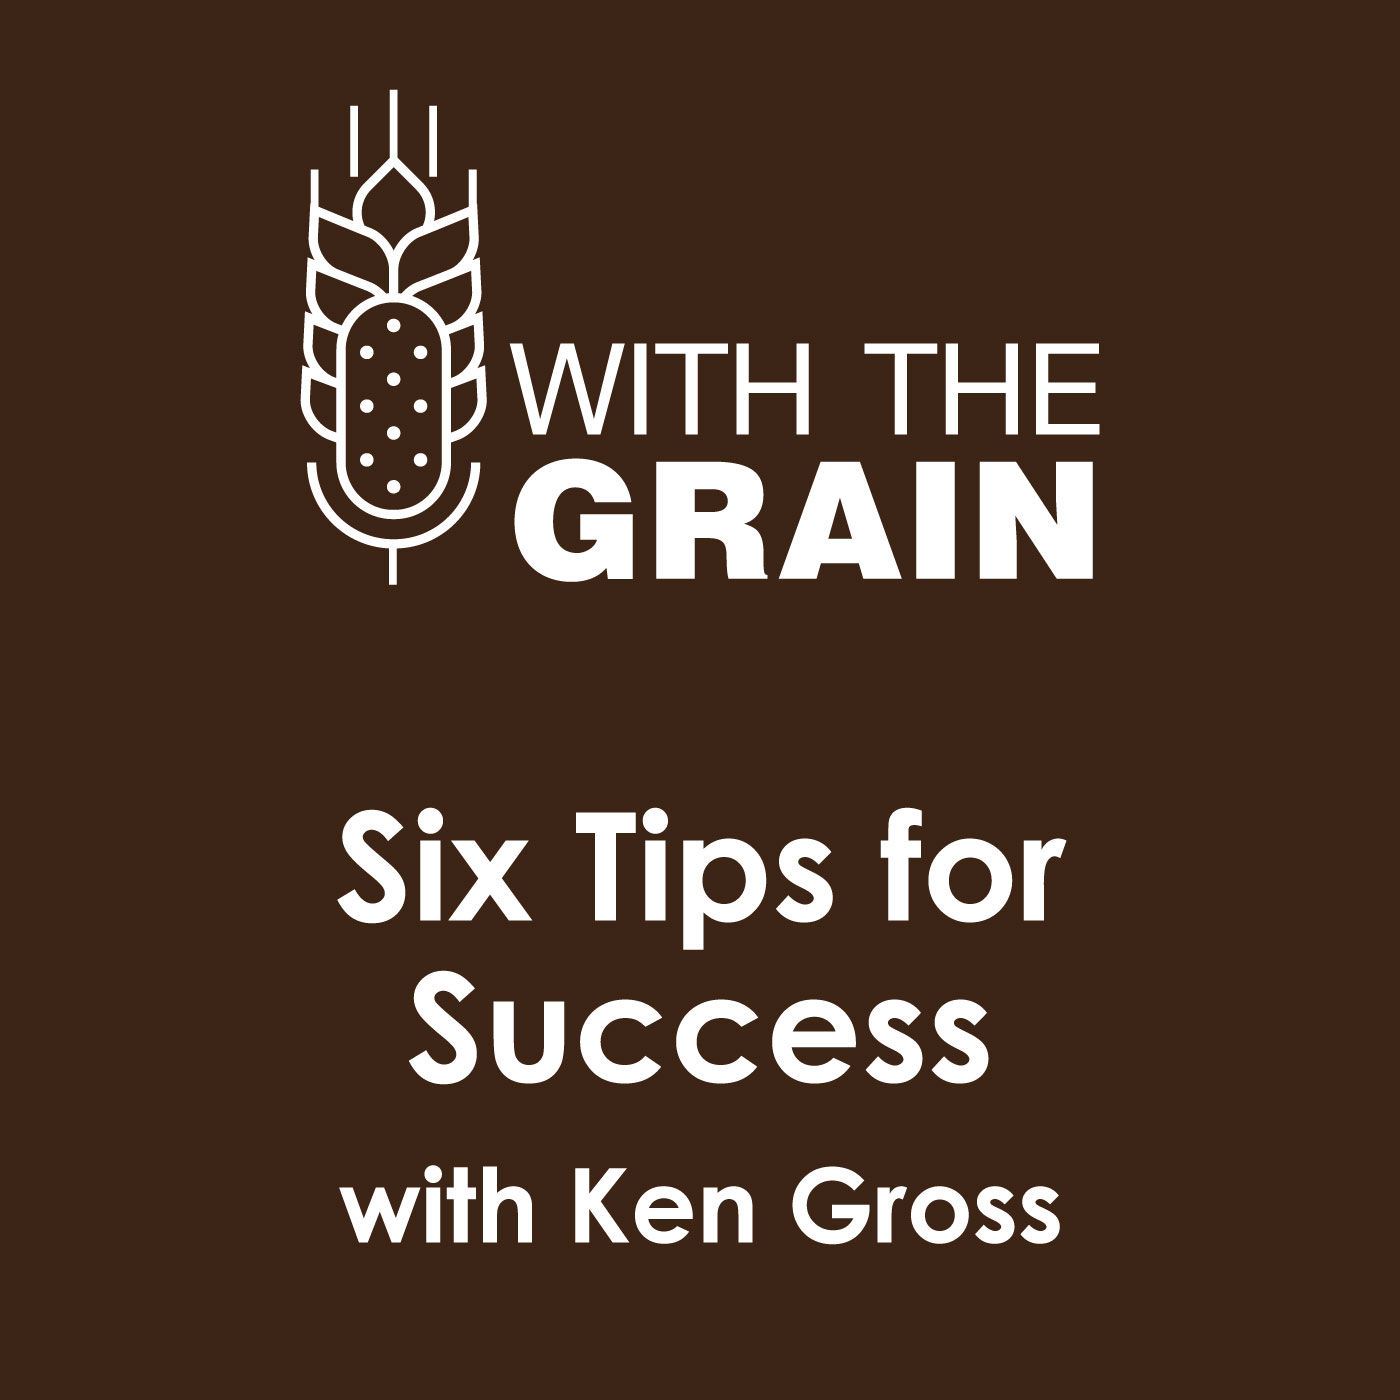 Six Tips for Growing Winter Wheat, with Ken Gross